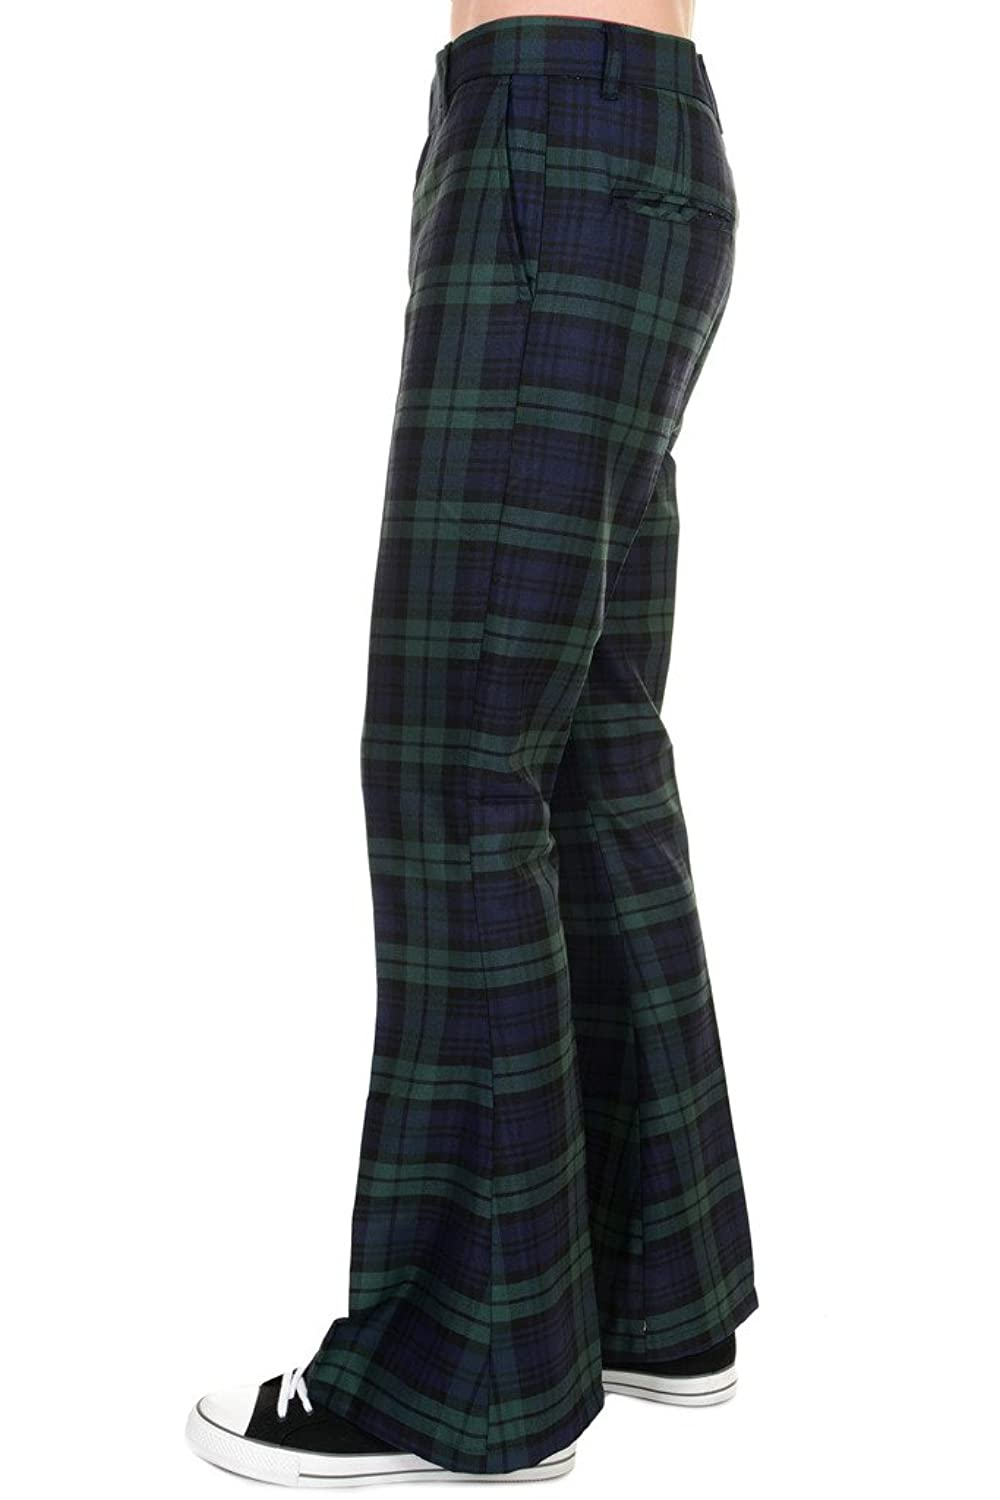 Men's Vintage Pants, Trousers, Jeans, Overalls Mens Run & Fly 60s 70s Vintage Blackwatch Tartan Plaid Bell Bottom Trousers $47.95 AT vintagedancer.com